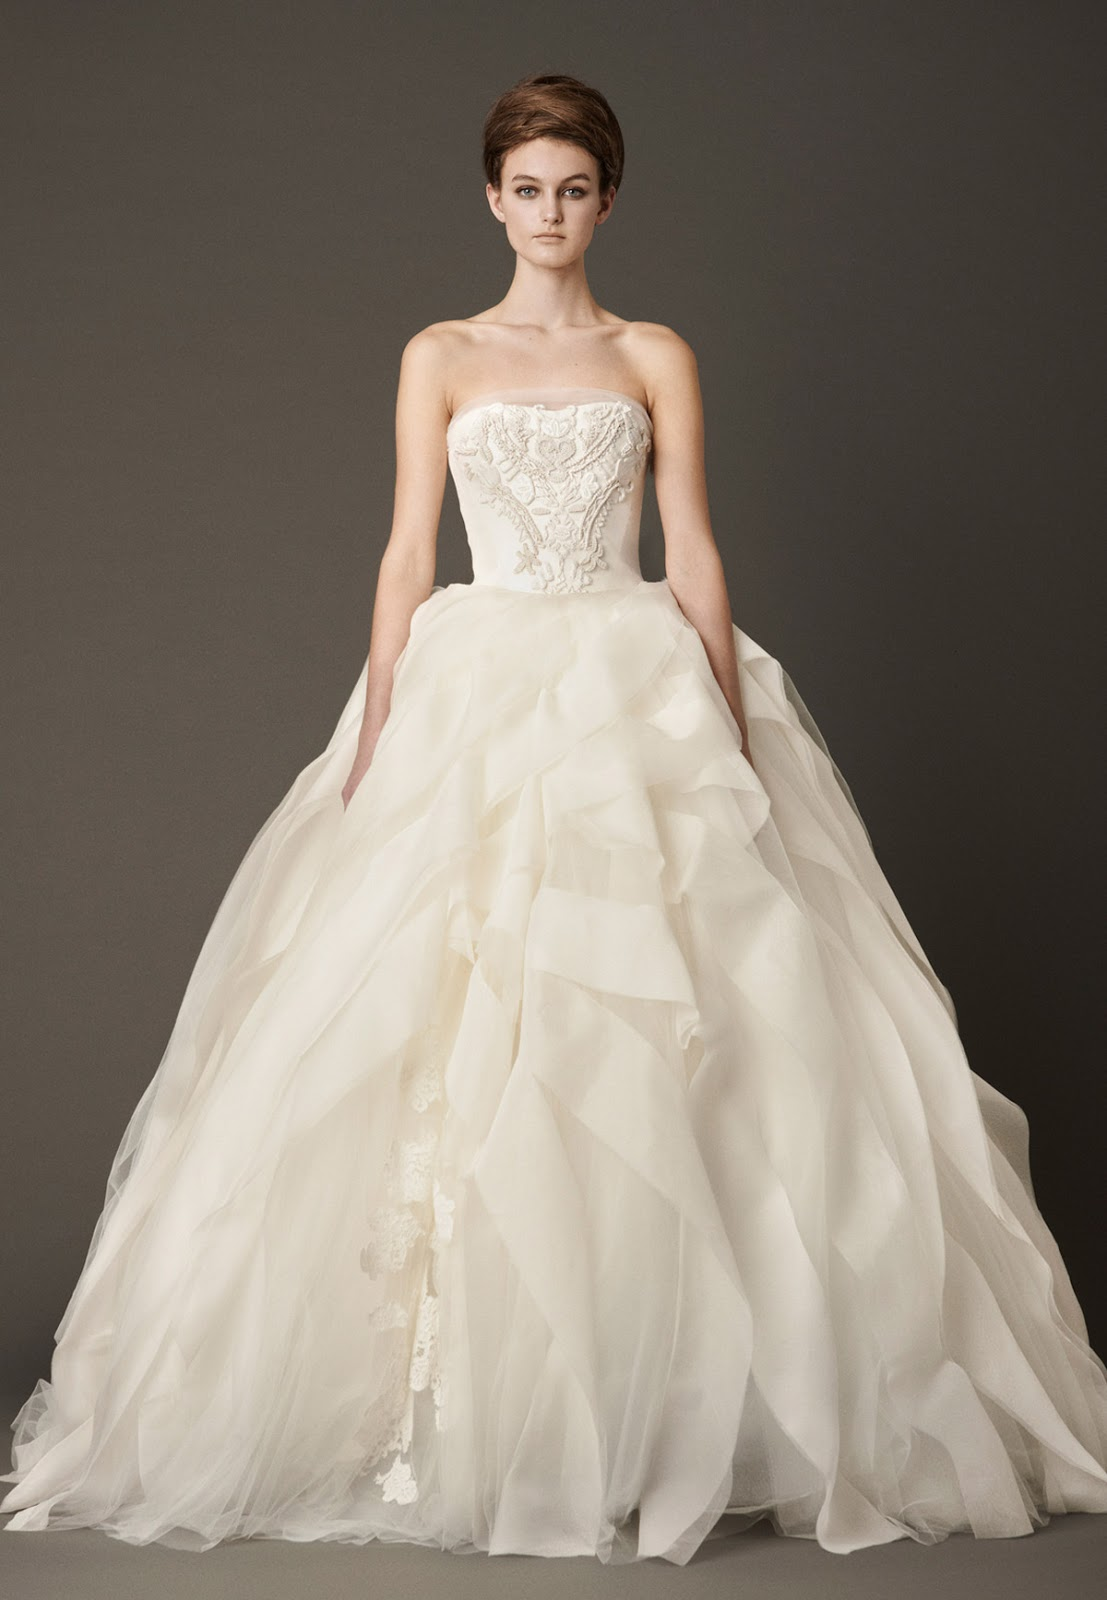 Dressybridal vera wang fall 2013 ruffled wedding gowns for Vera wang used wedding dress